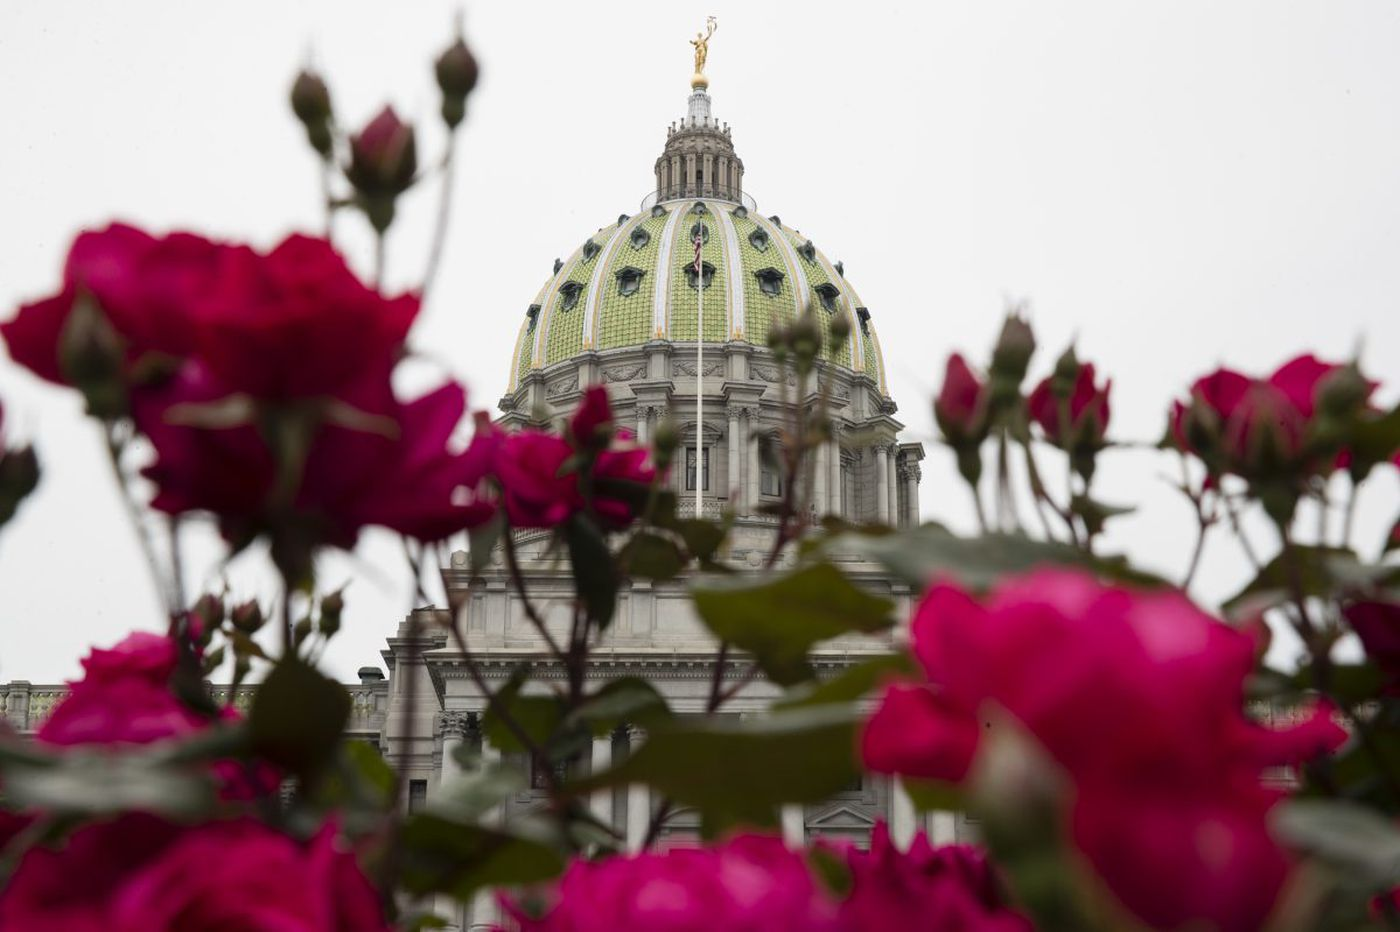 Pa. legislature deciding how much to spend - later how to pay for it